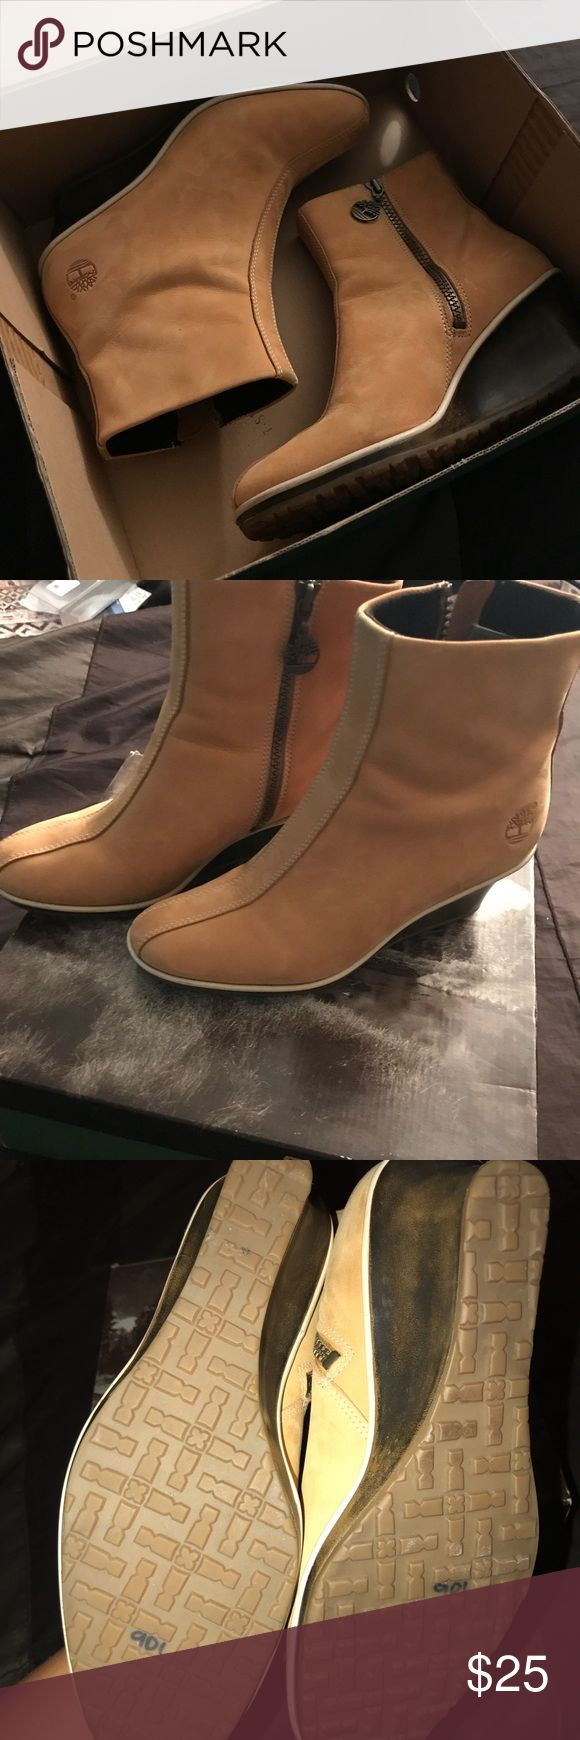 Timberland boots. Worn twice. Great condition Wheat dress Timberlands worn twice. Looks new Timberland Shoes Ankle Boots & Booties